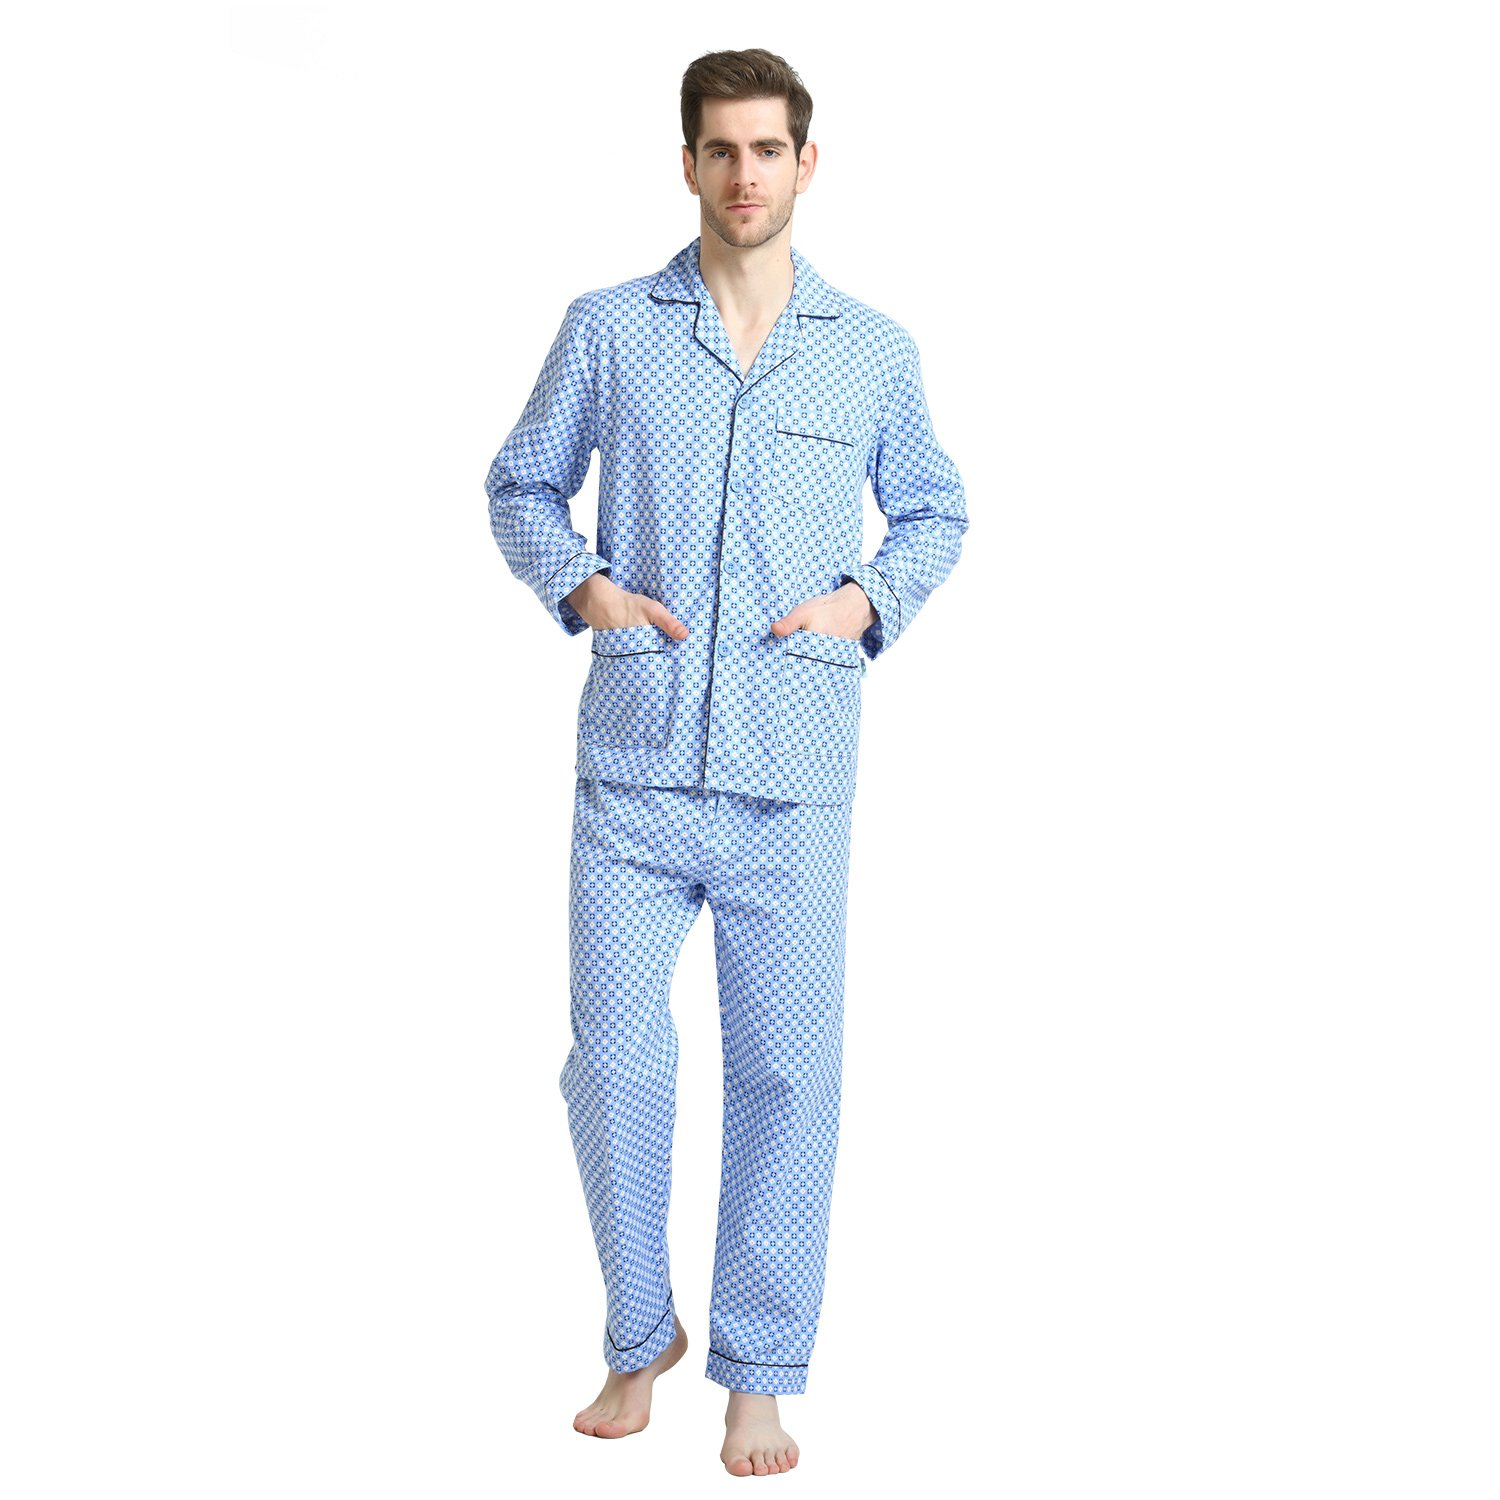 Pajamas for Men, 100% Cotton Fleece Pj Set with Elastic Pants